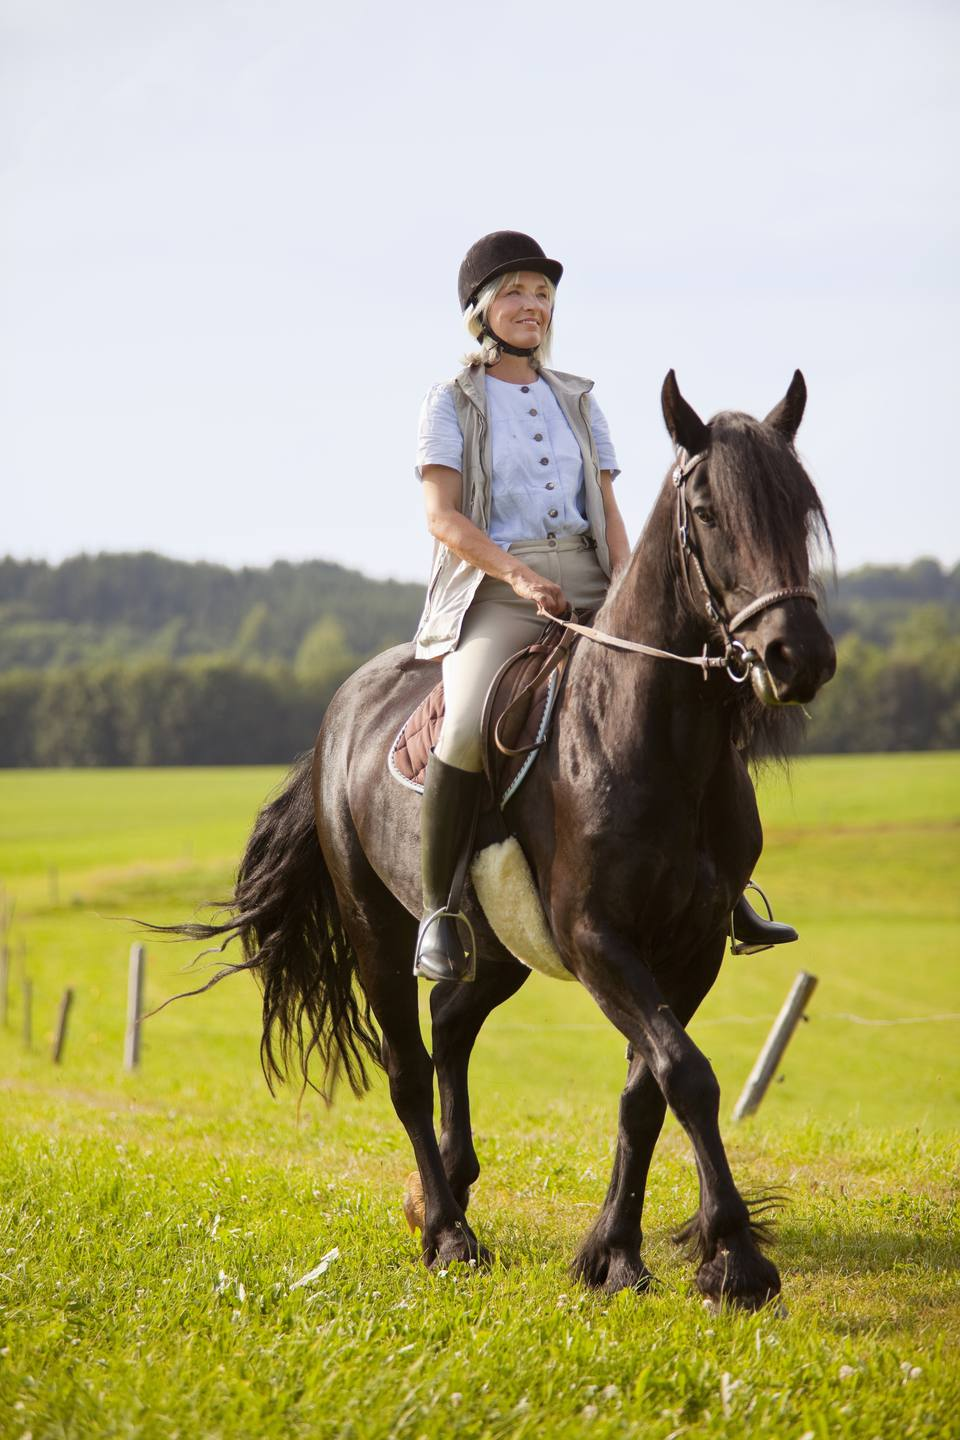 Horses may have originated in Arabia and central Asia, DNA